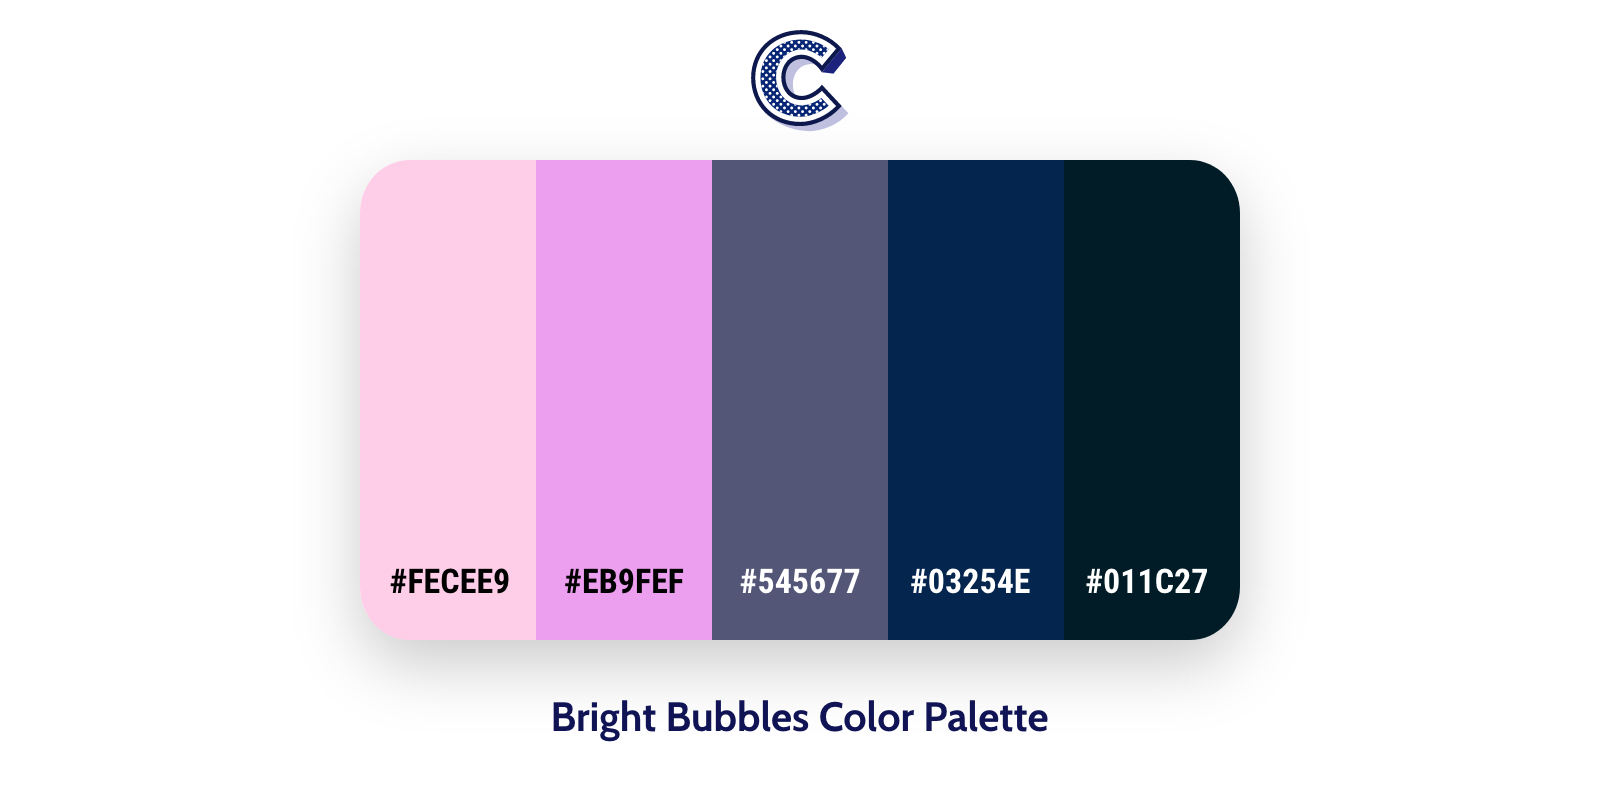 the featured of bright bubbles color palette